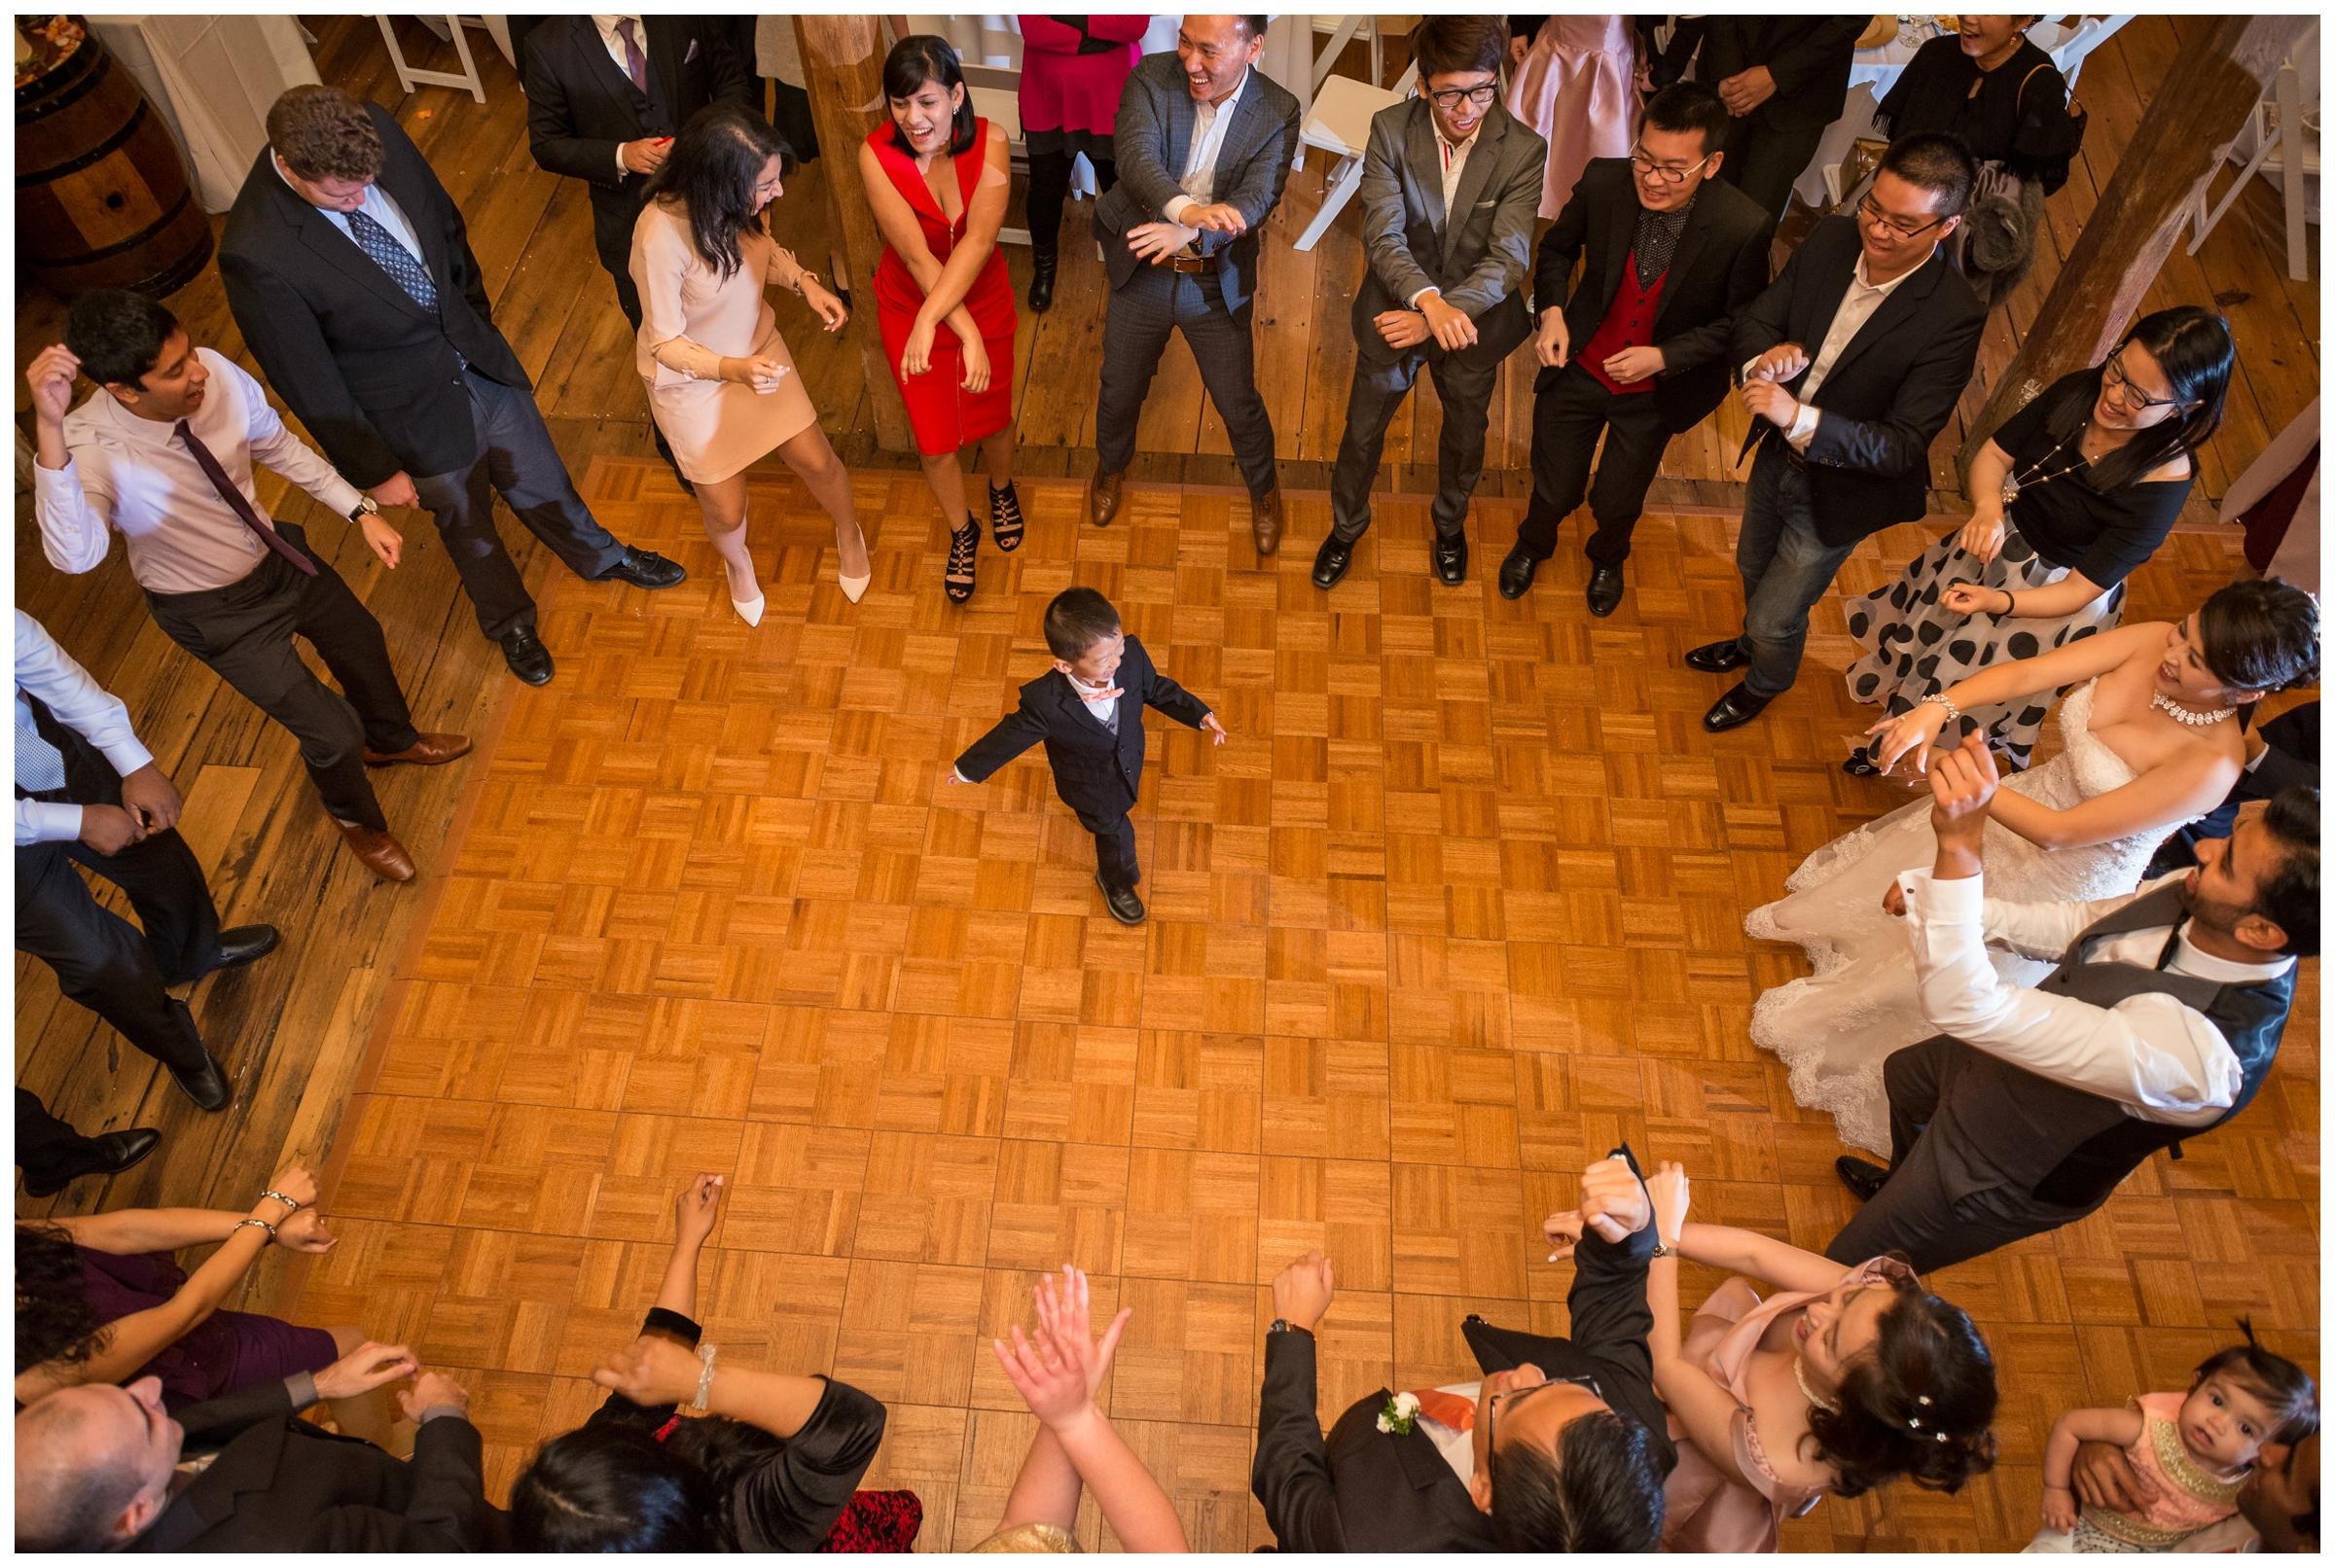 child dancing in circle during wedding reception at Stoneleigh Golf and Country Club in Virginia